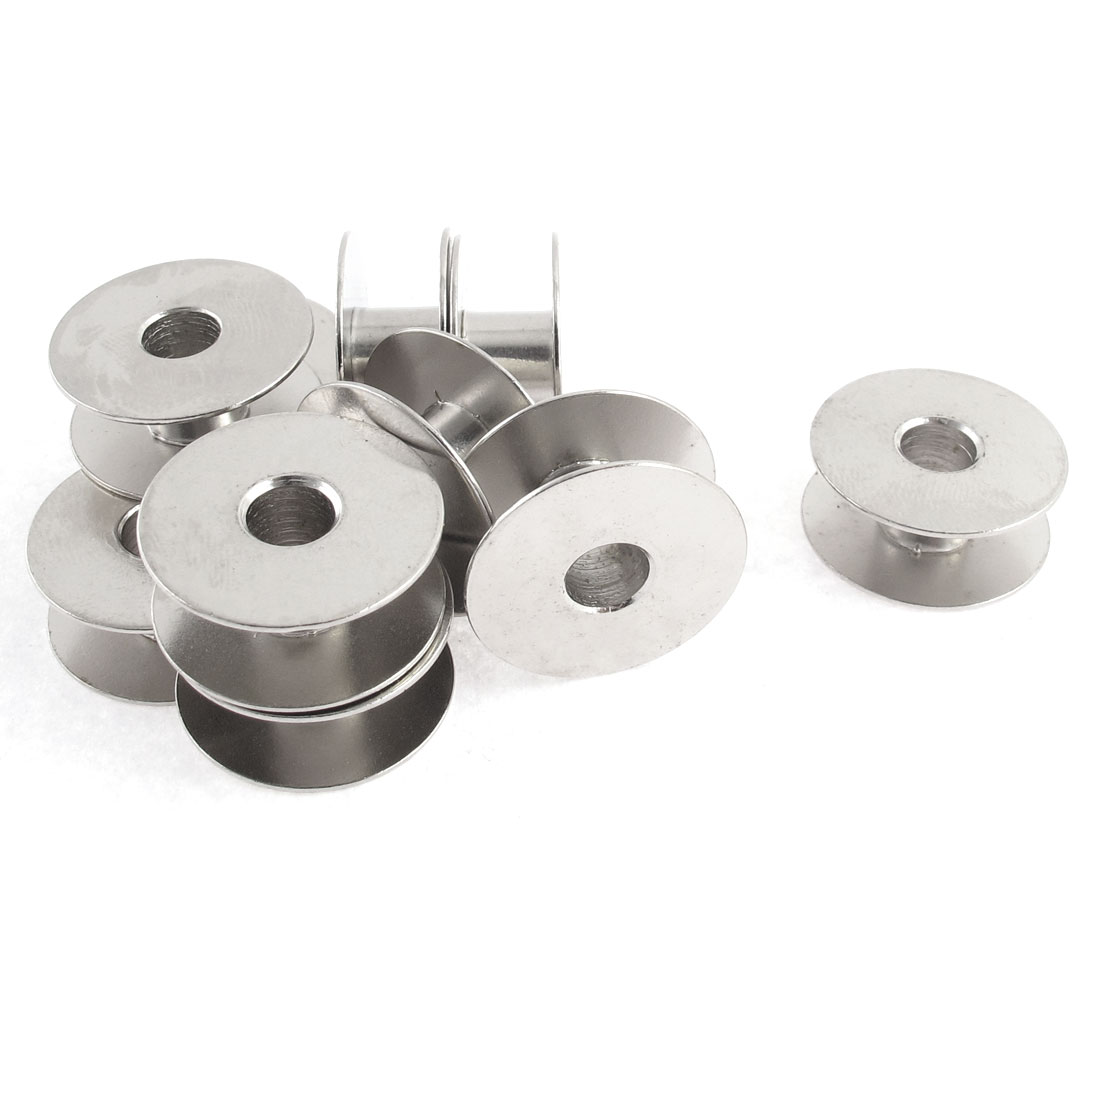 10Pcs Silver Tone Metal Rotary Single Sewing Machine Bobbin